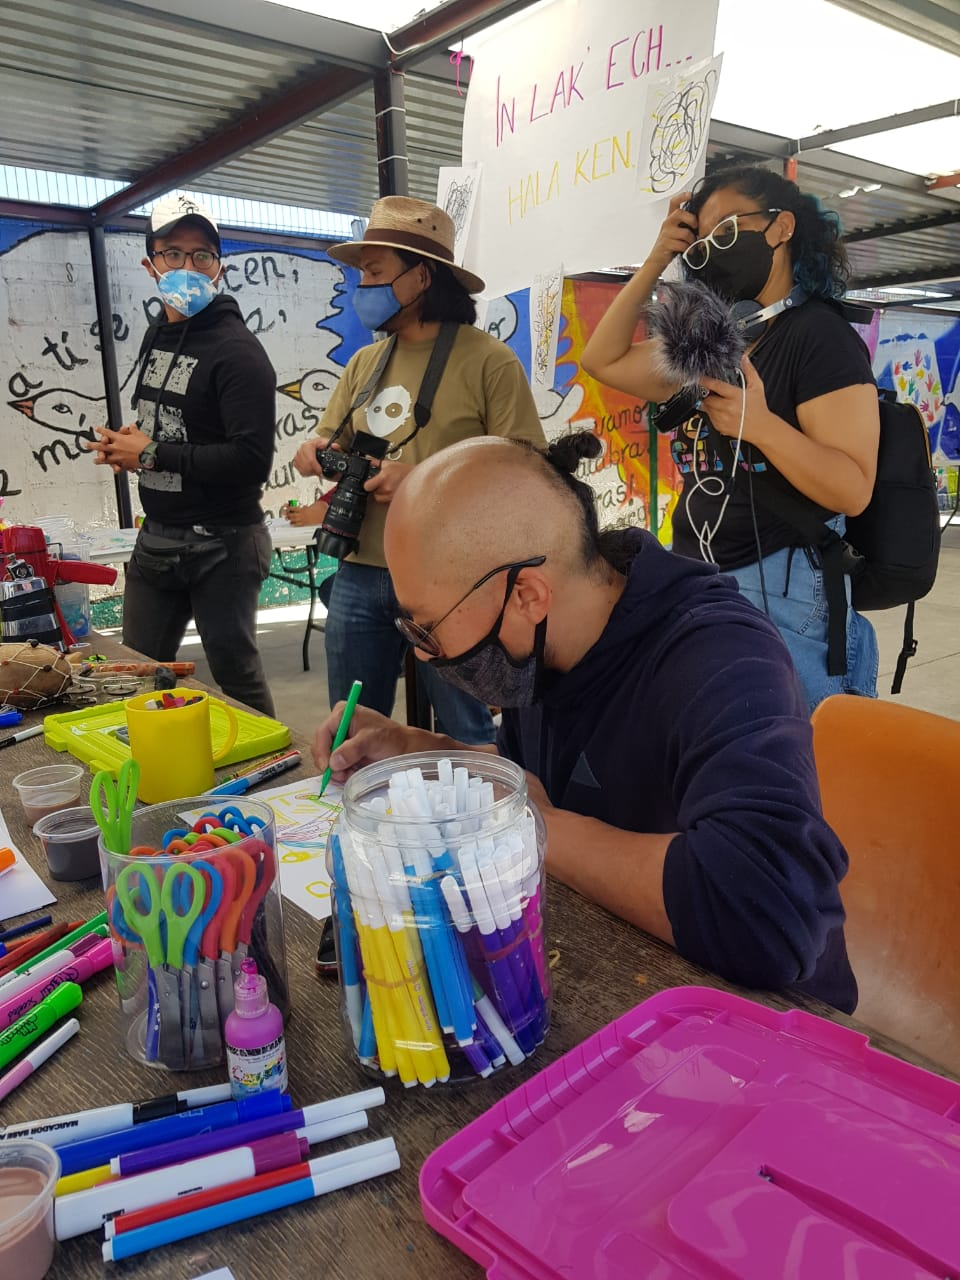 Salomón Santiago of La Quinta Teatro sits at a table full of art supplies, drawing, while three people stand behind him